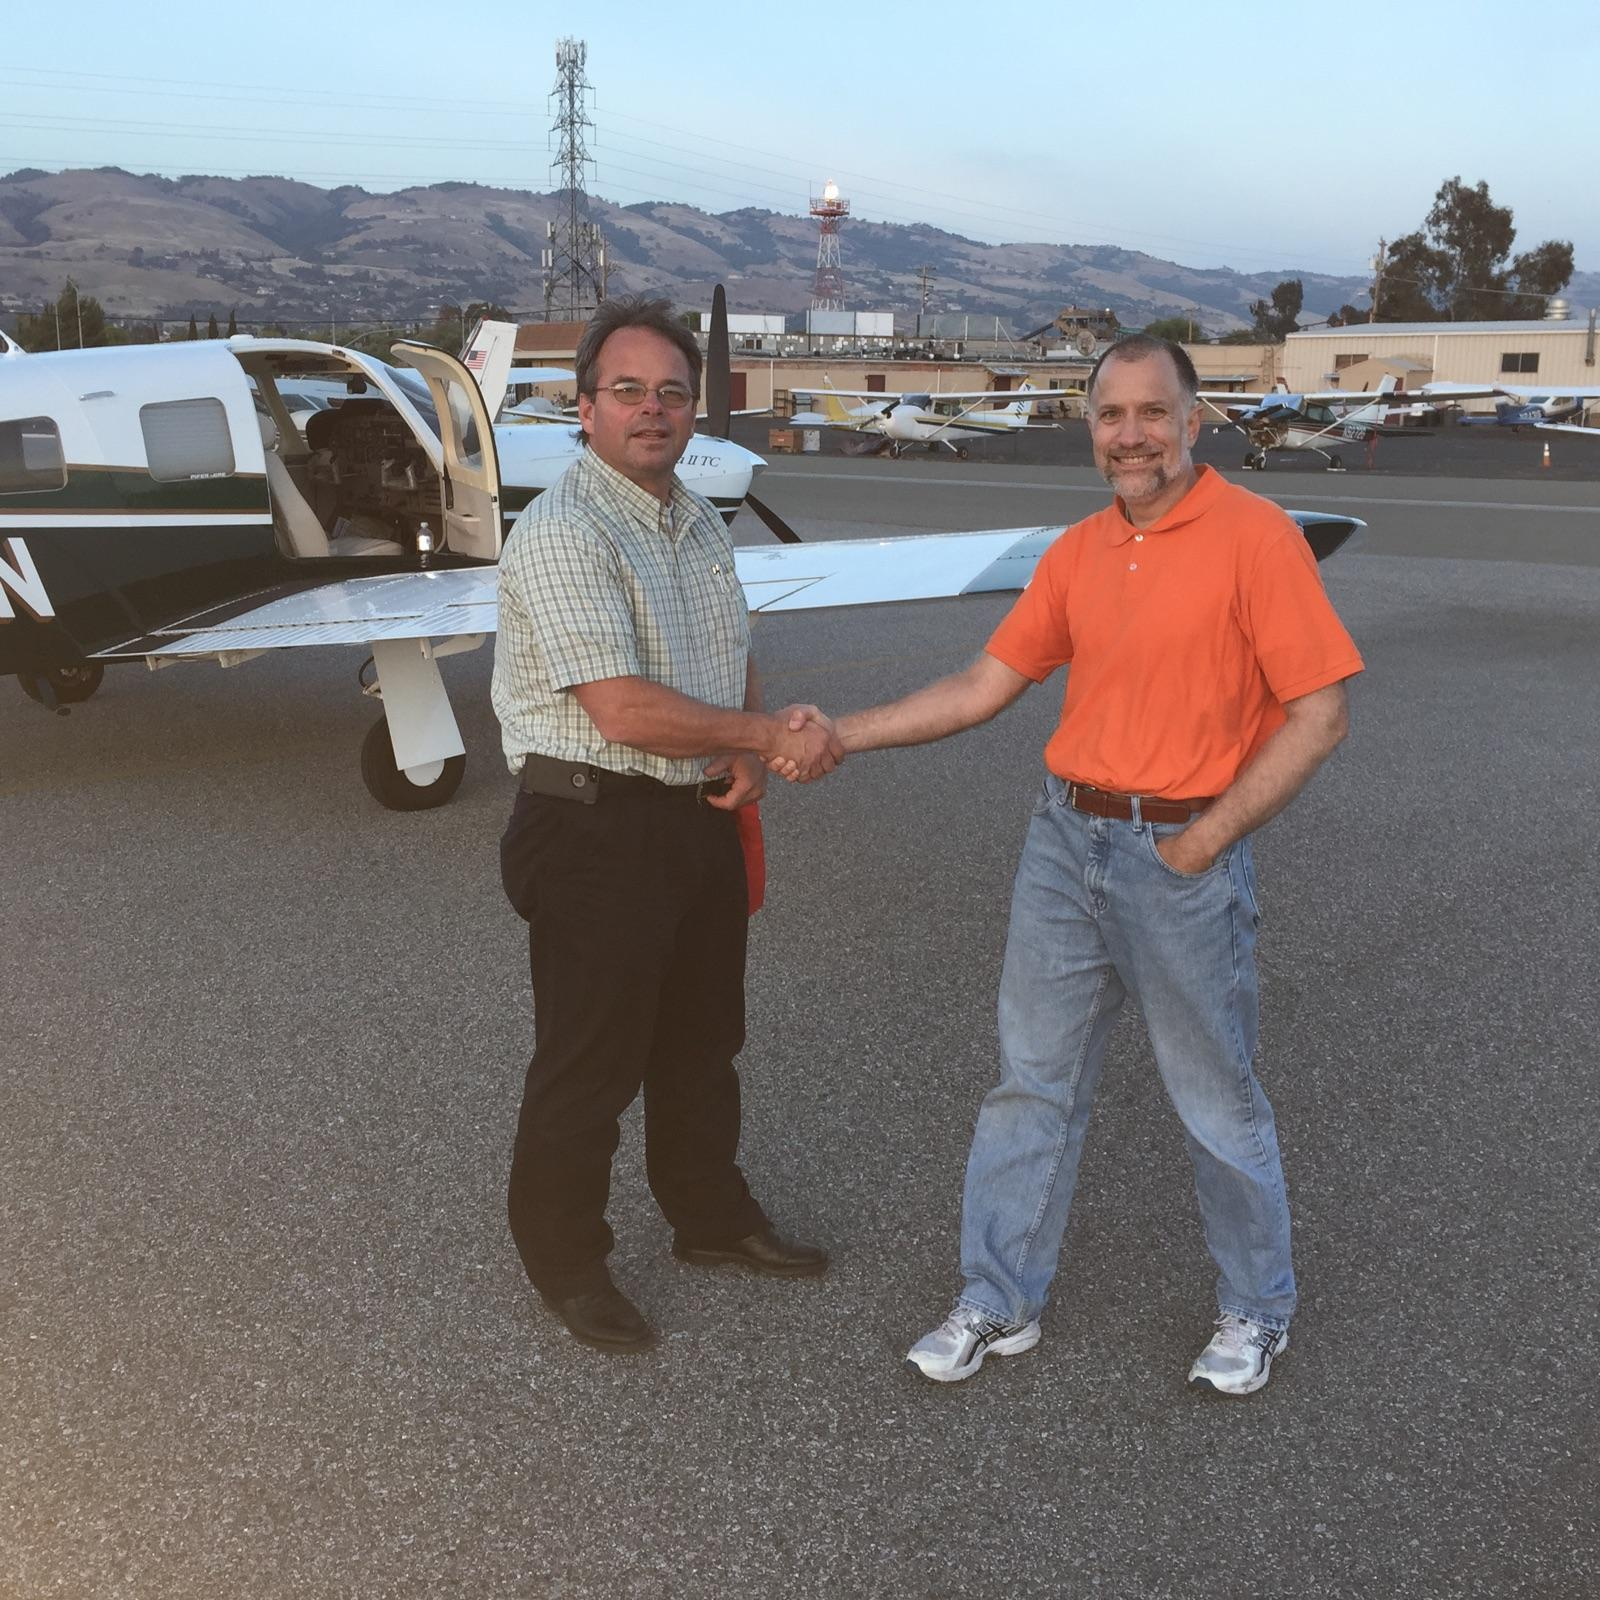 John D'Costa, newly certified instrument pilot with DPE Eric Cook